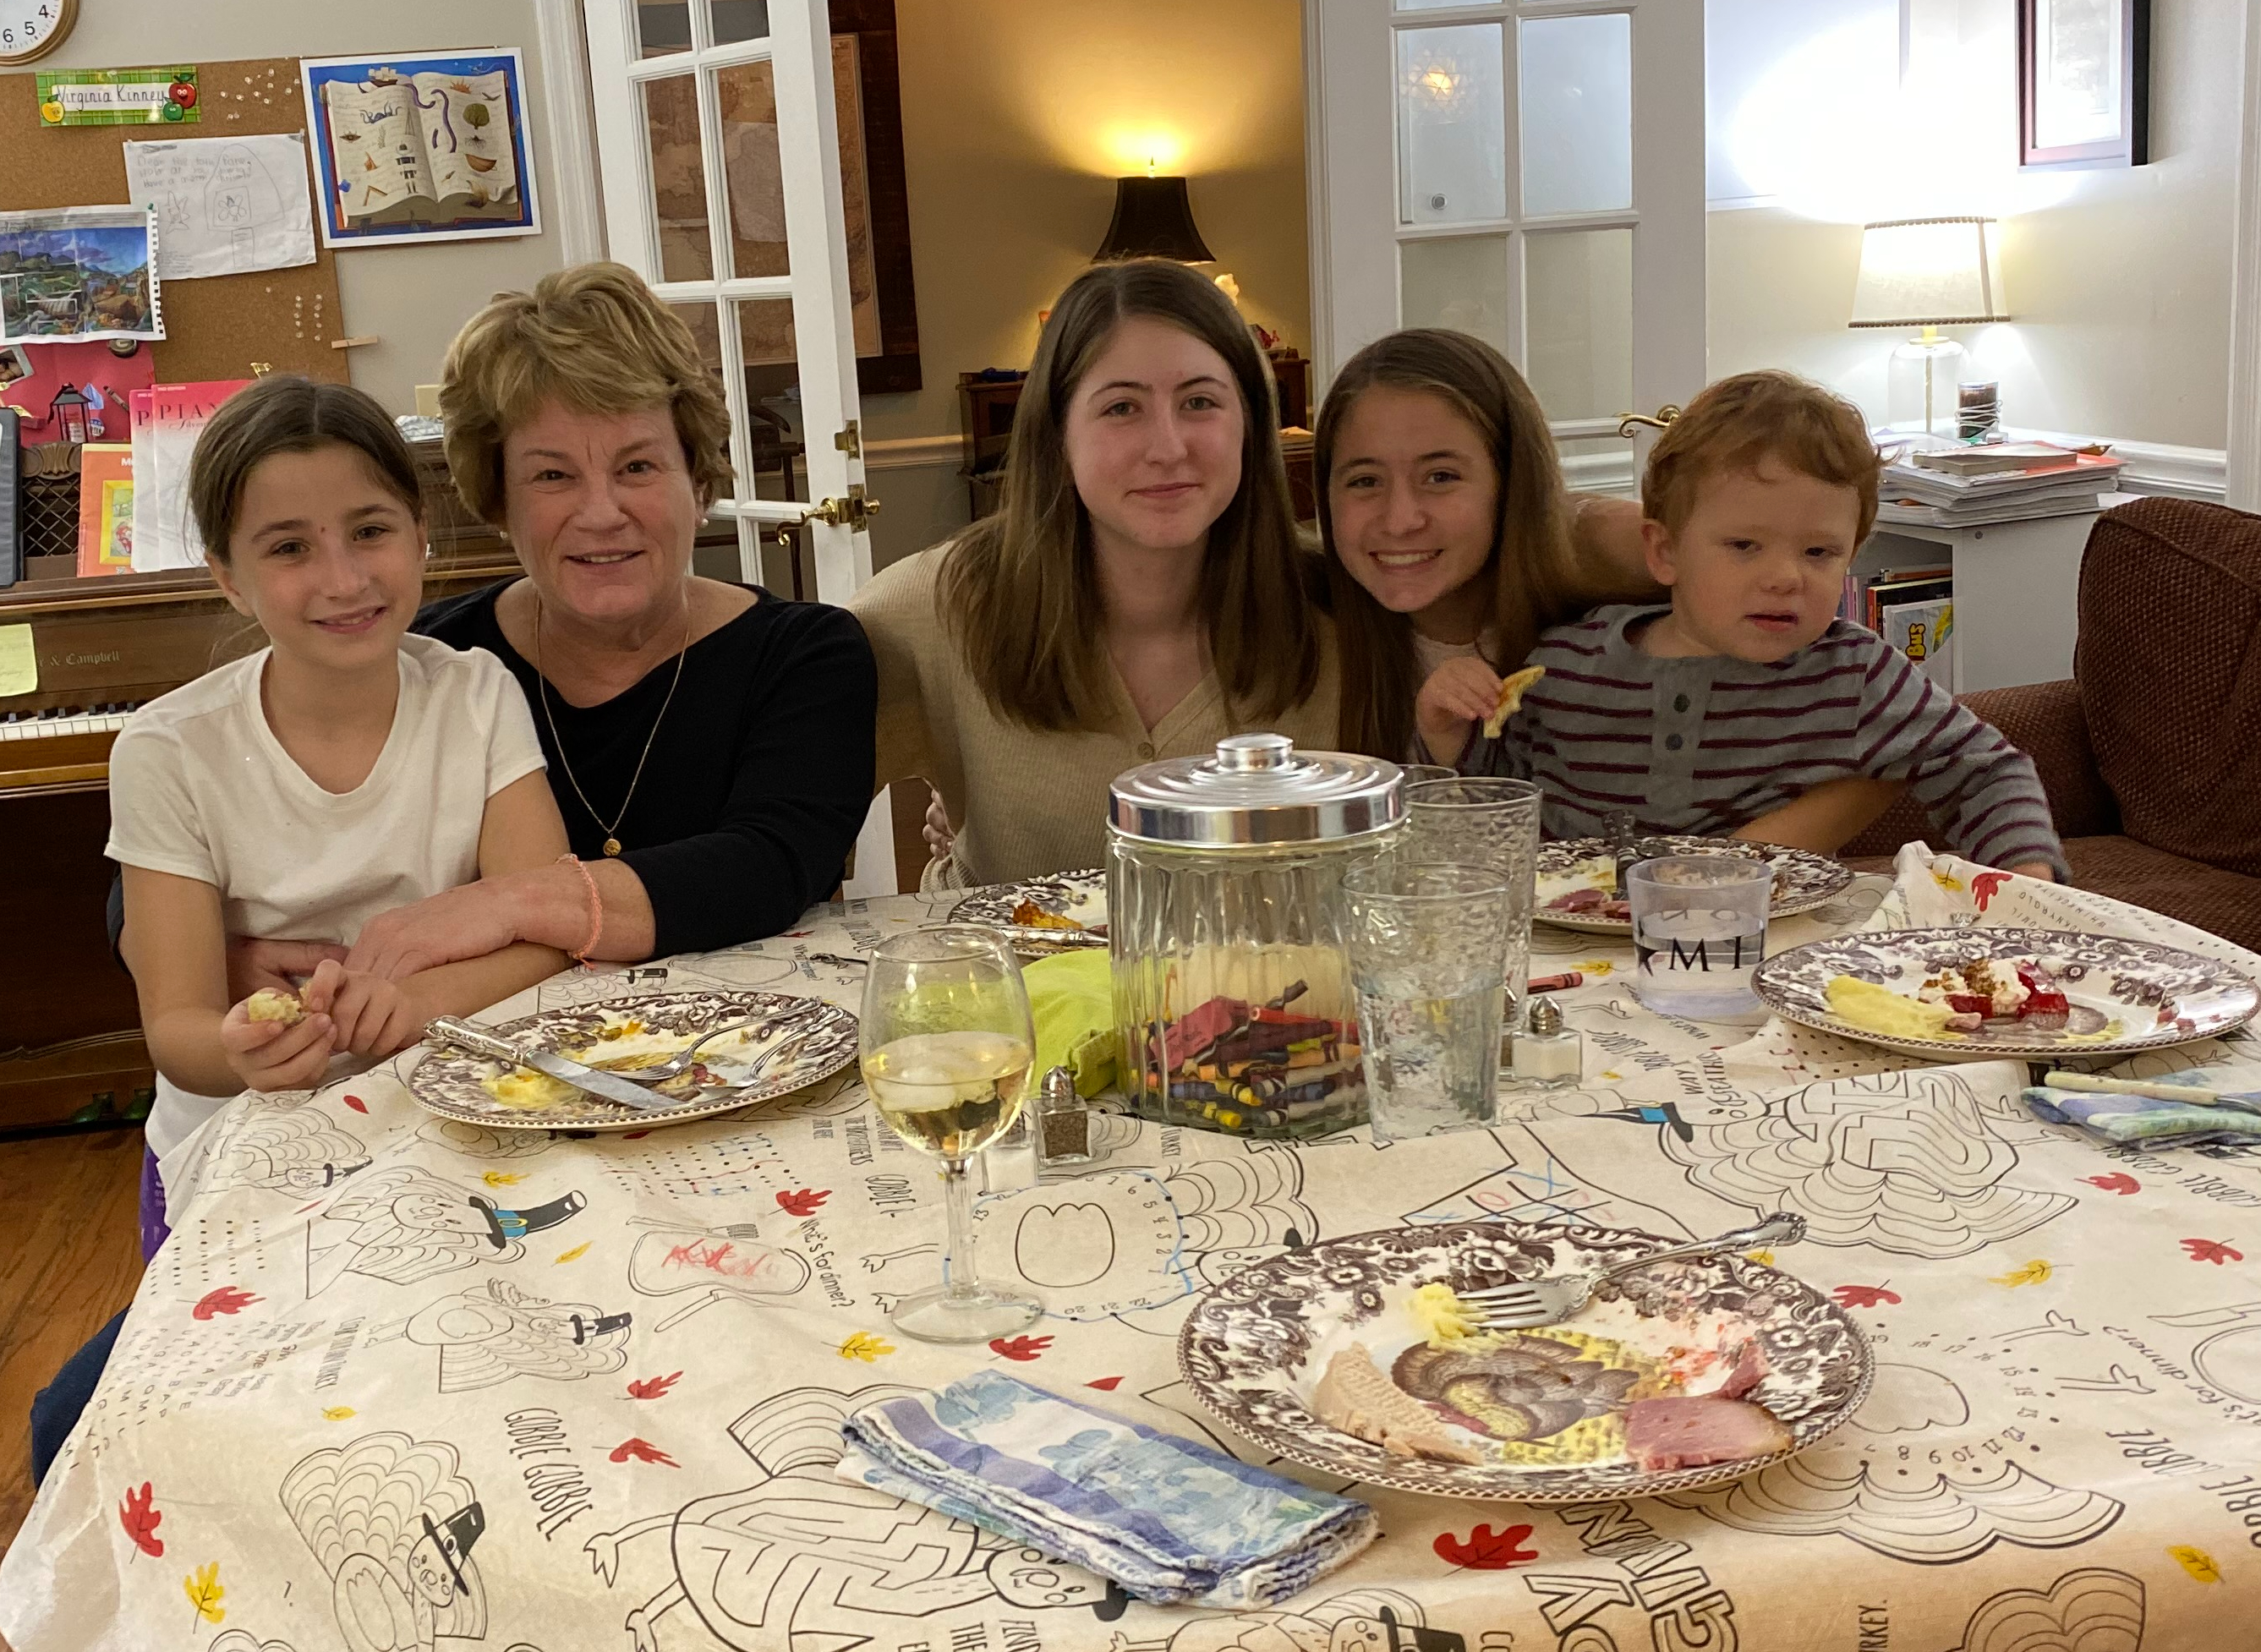 The children's table at Thanksgiving in St. Marys, GA. MoMo is always requested at the children's table!